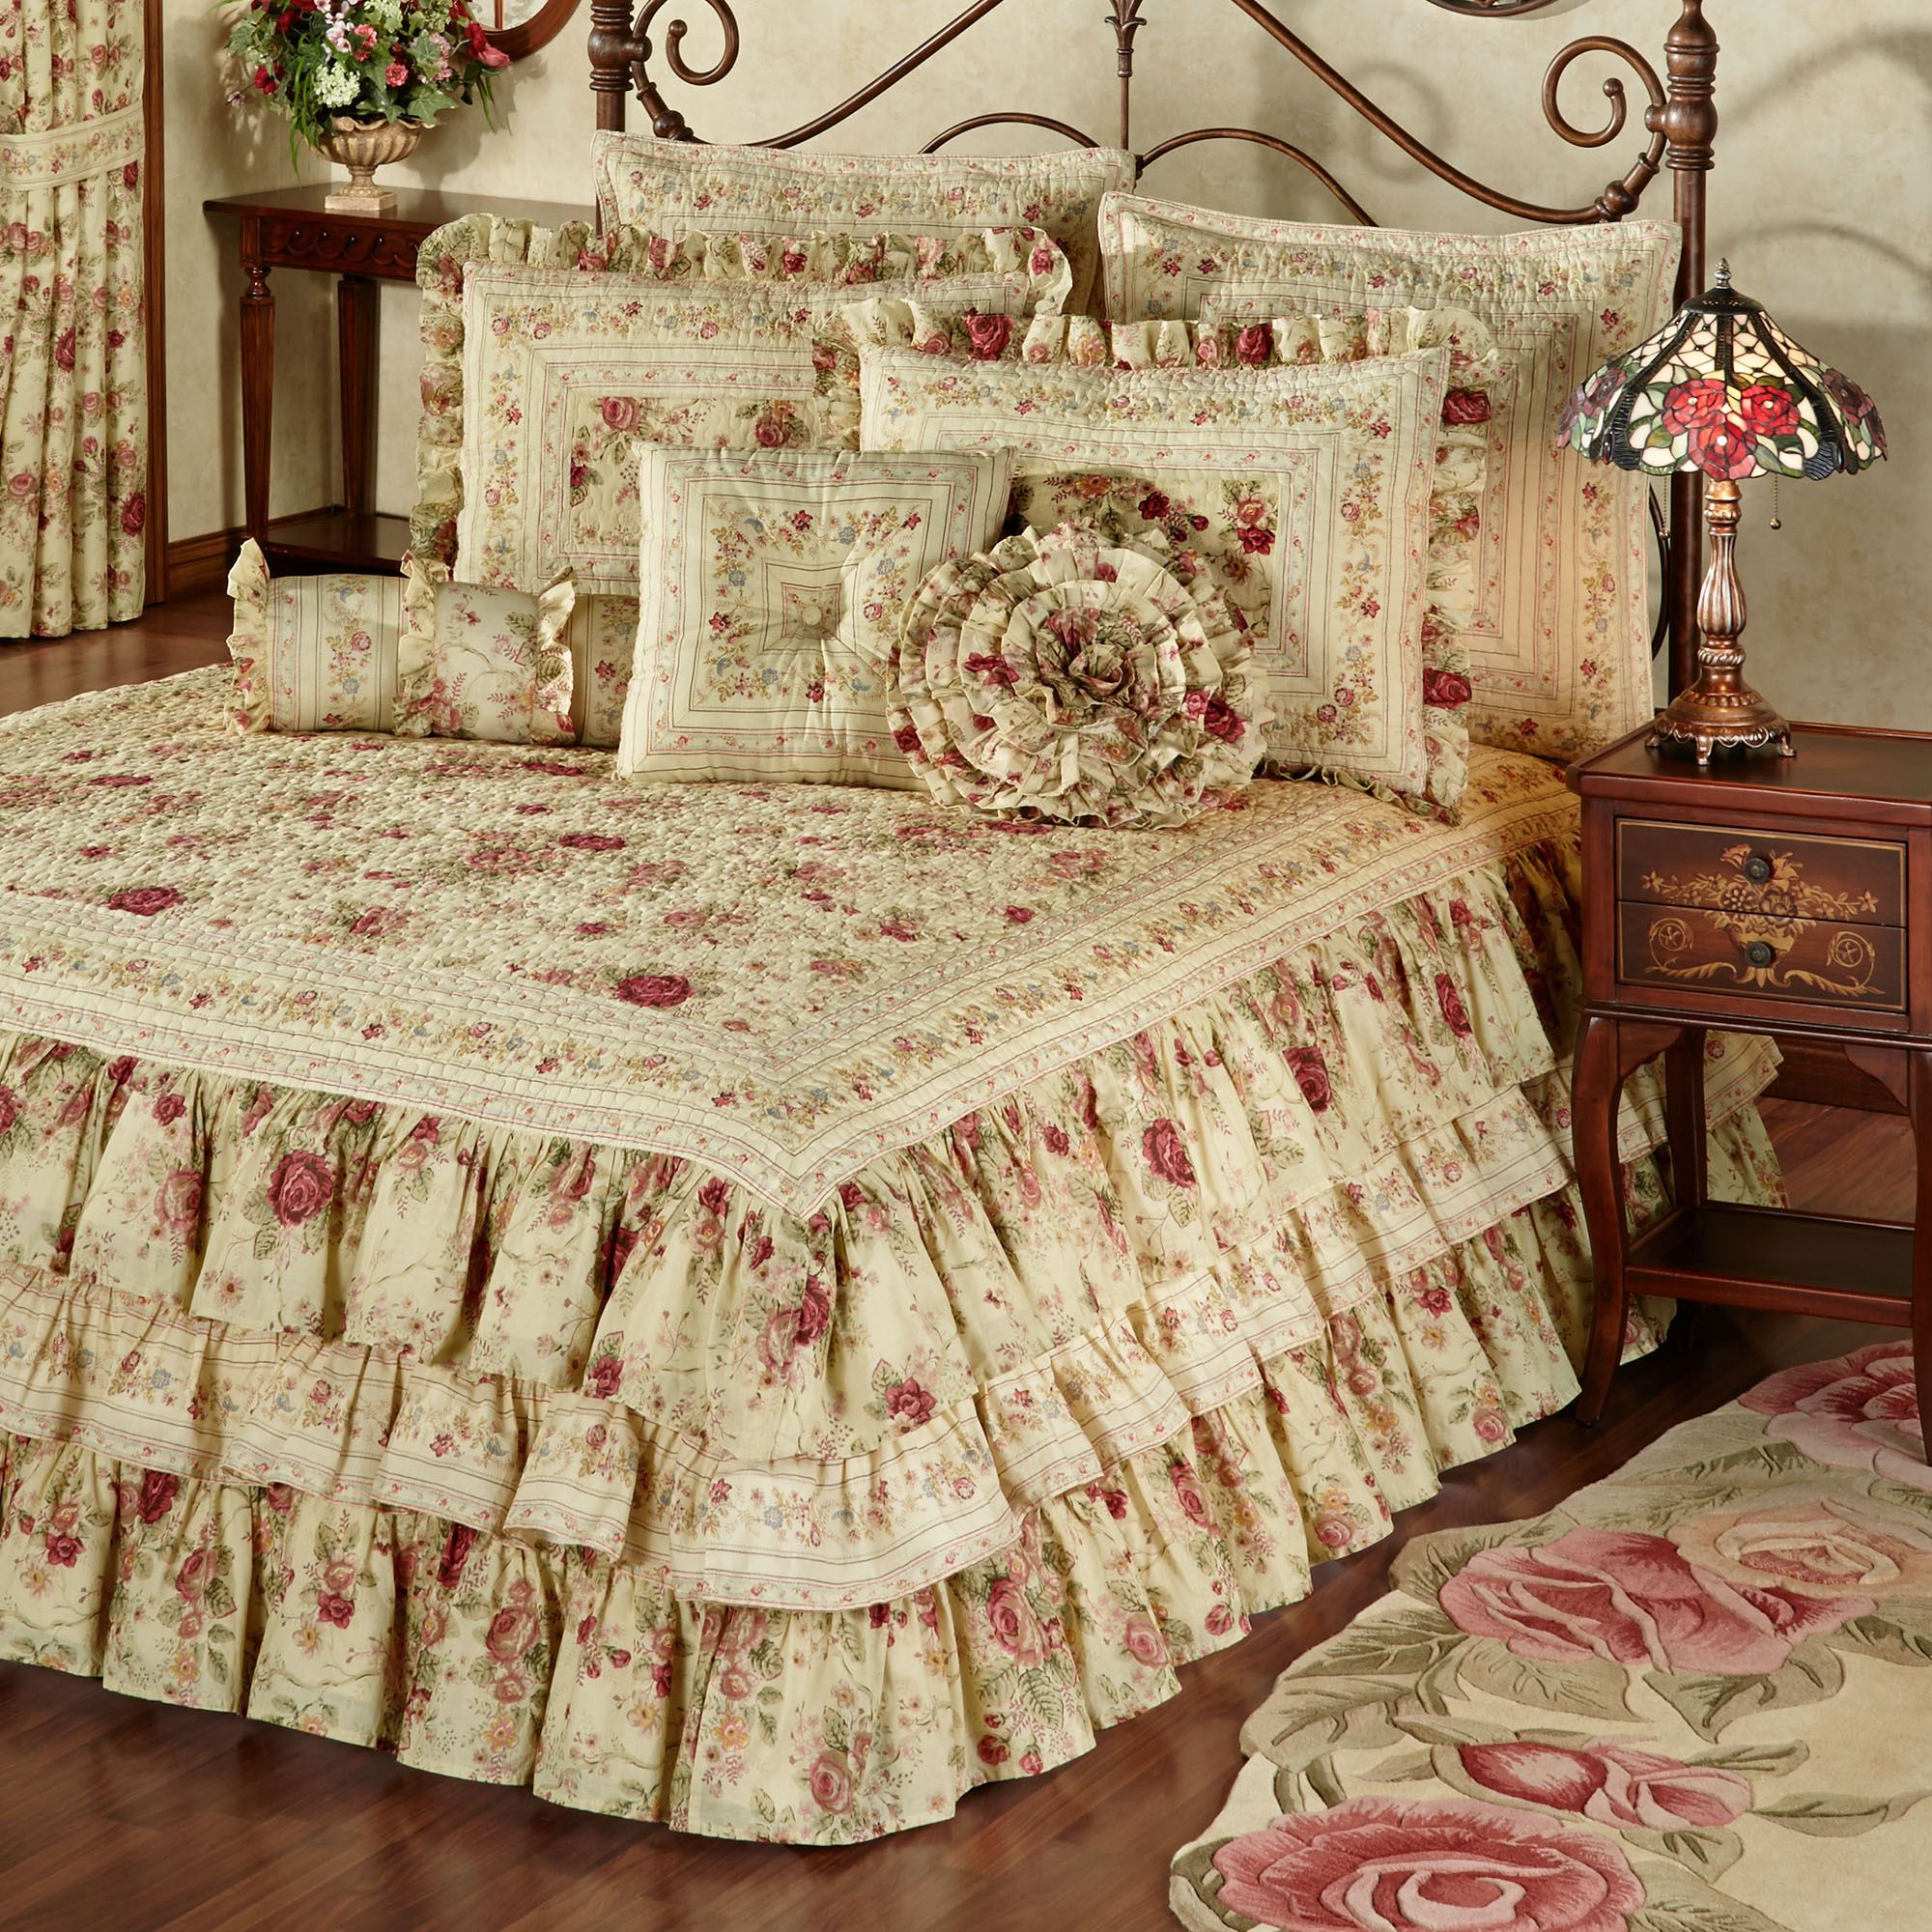 Beautiful Vintage Rose Floral Ruffled Grande Bedspread PW83